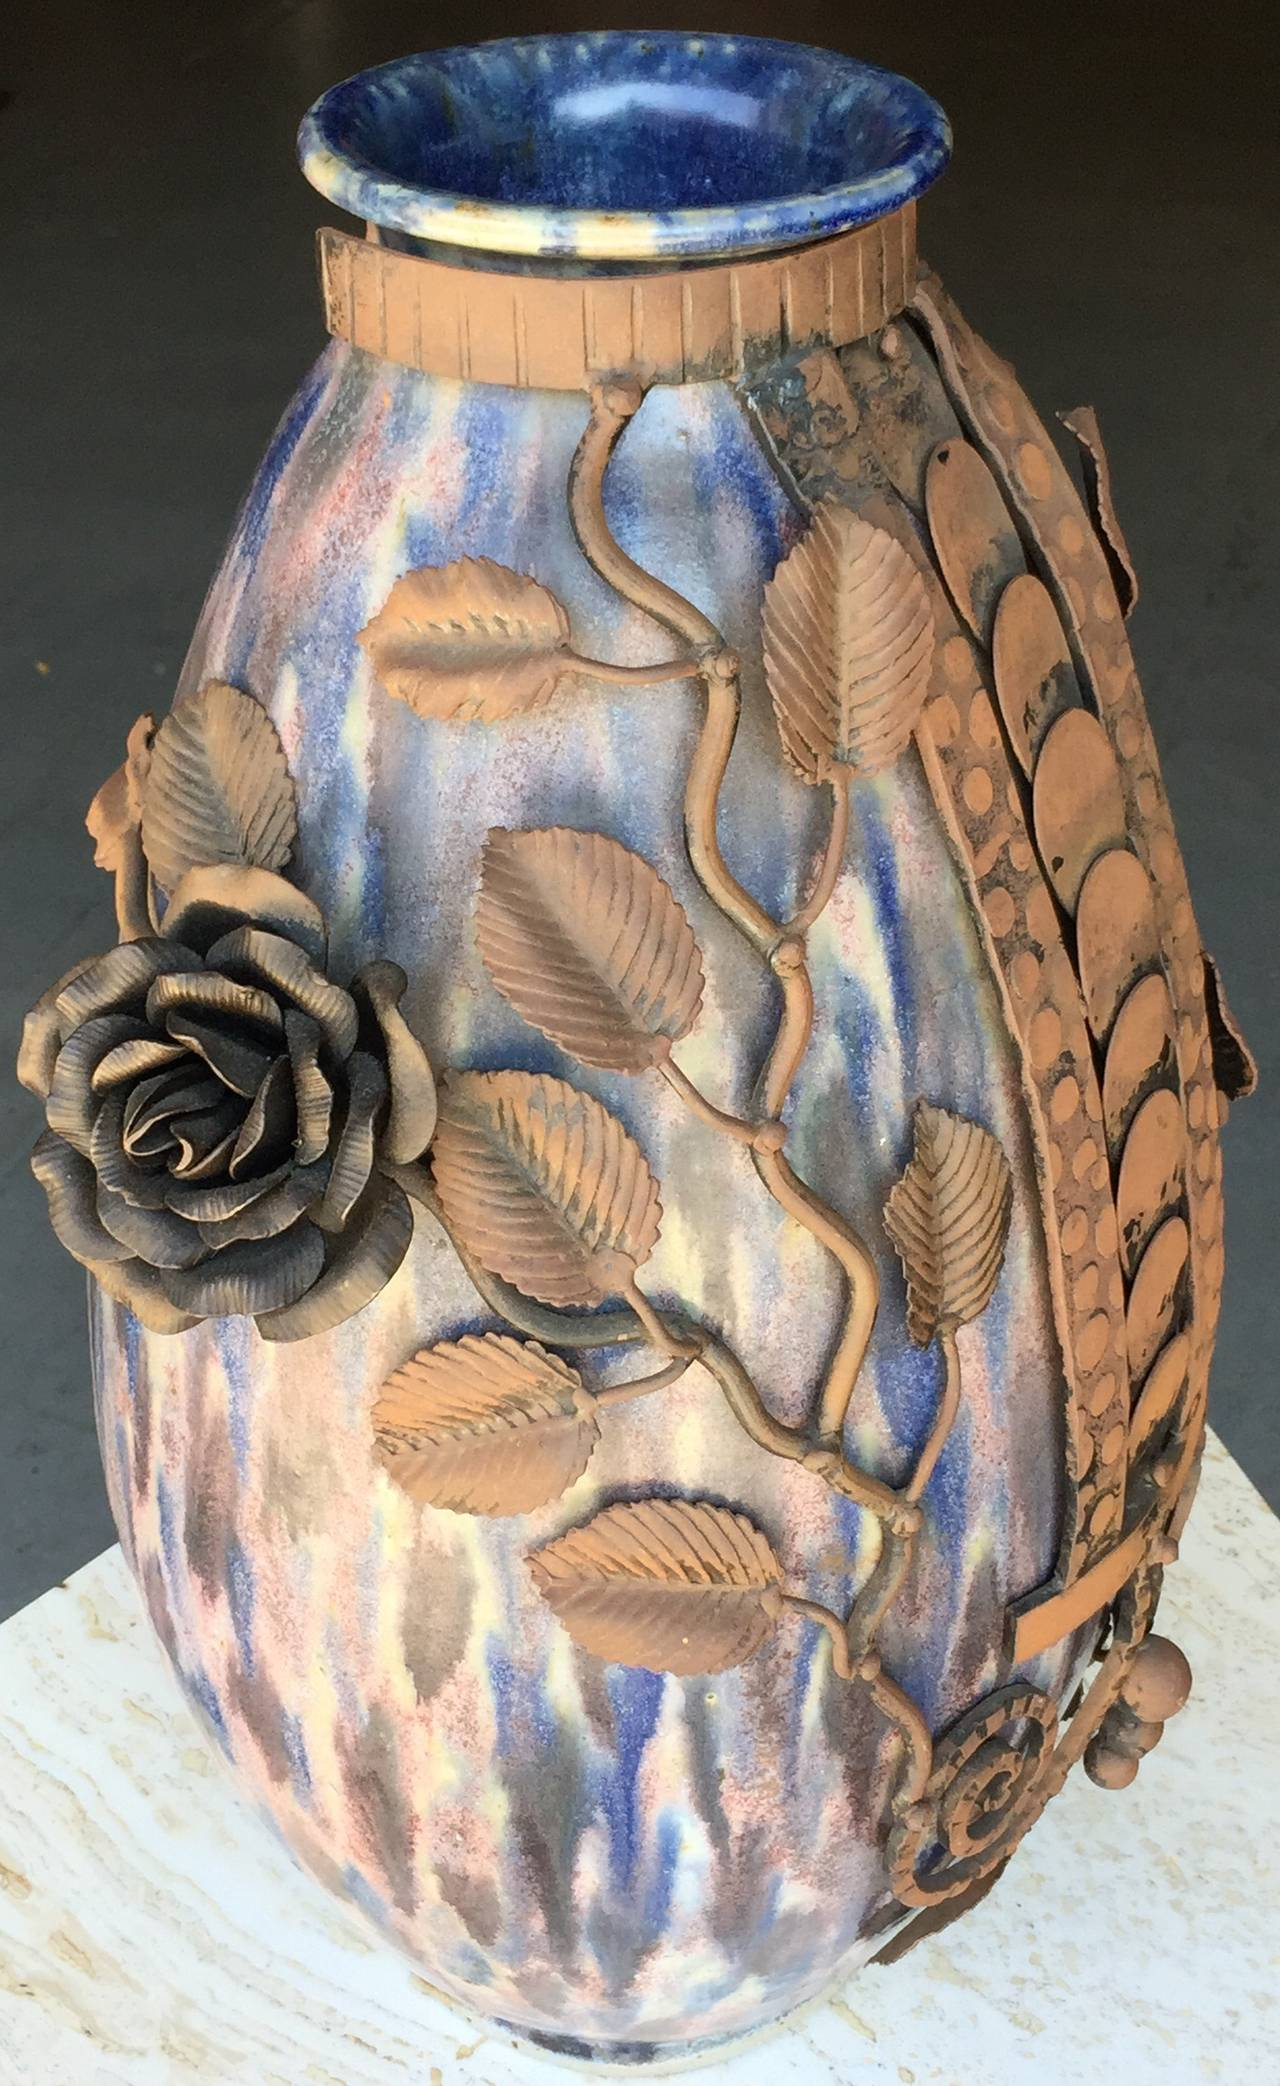 Large hand thrown pottery vase by Roger Guerin with subtle poly-chromatic glaze, with elaborate hand-chased wrought iron applique´ by Franc¸ois Carion. Signed on bottom.